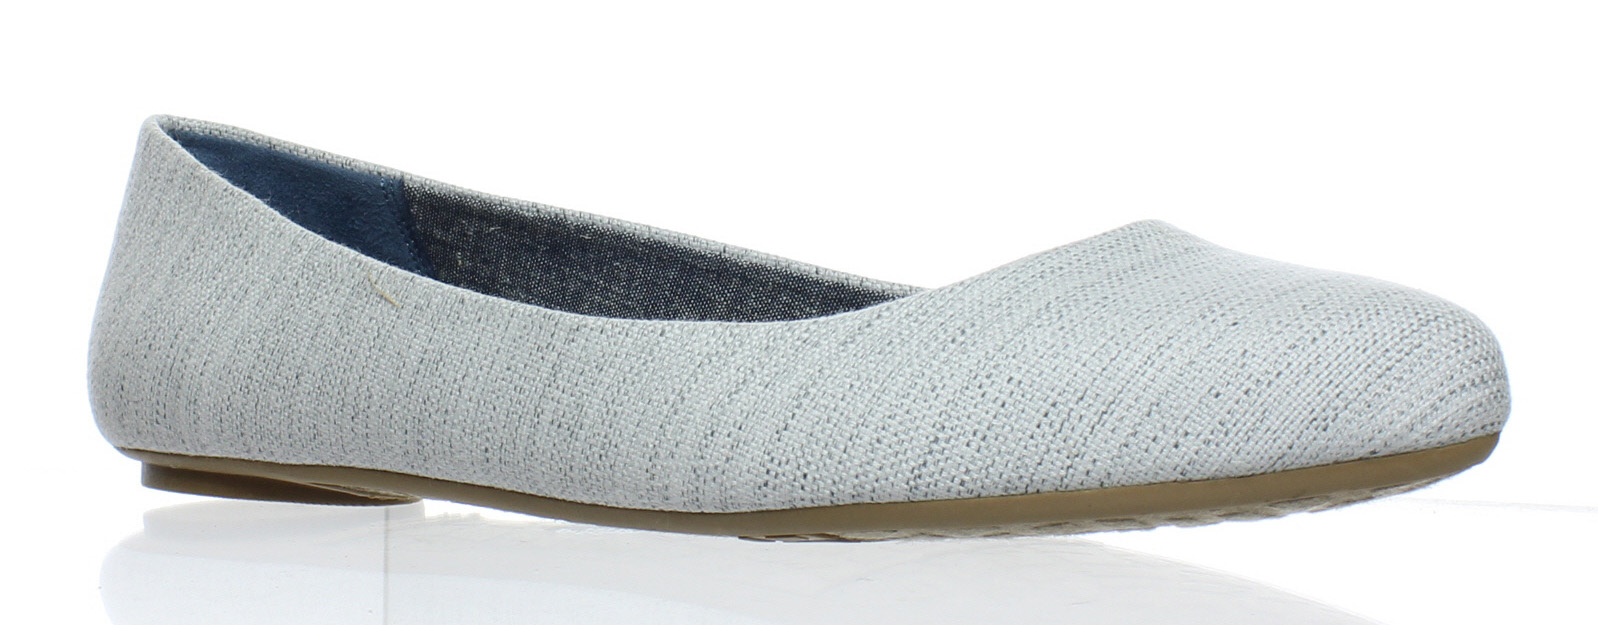 New Gray Dr. Scholl's Womens Really Gray New Ballet Flats Size 8.5 273b0e